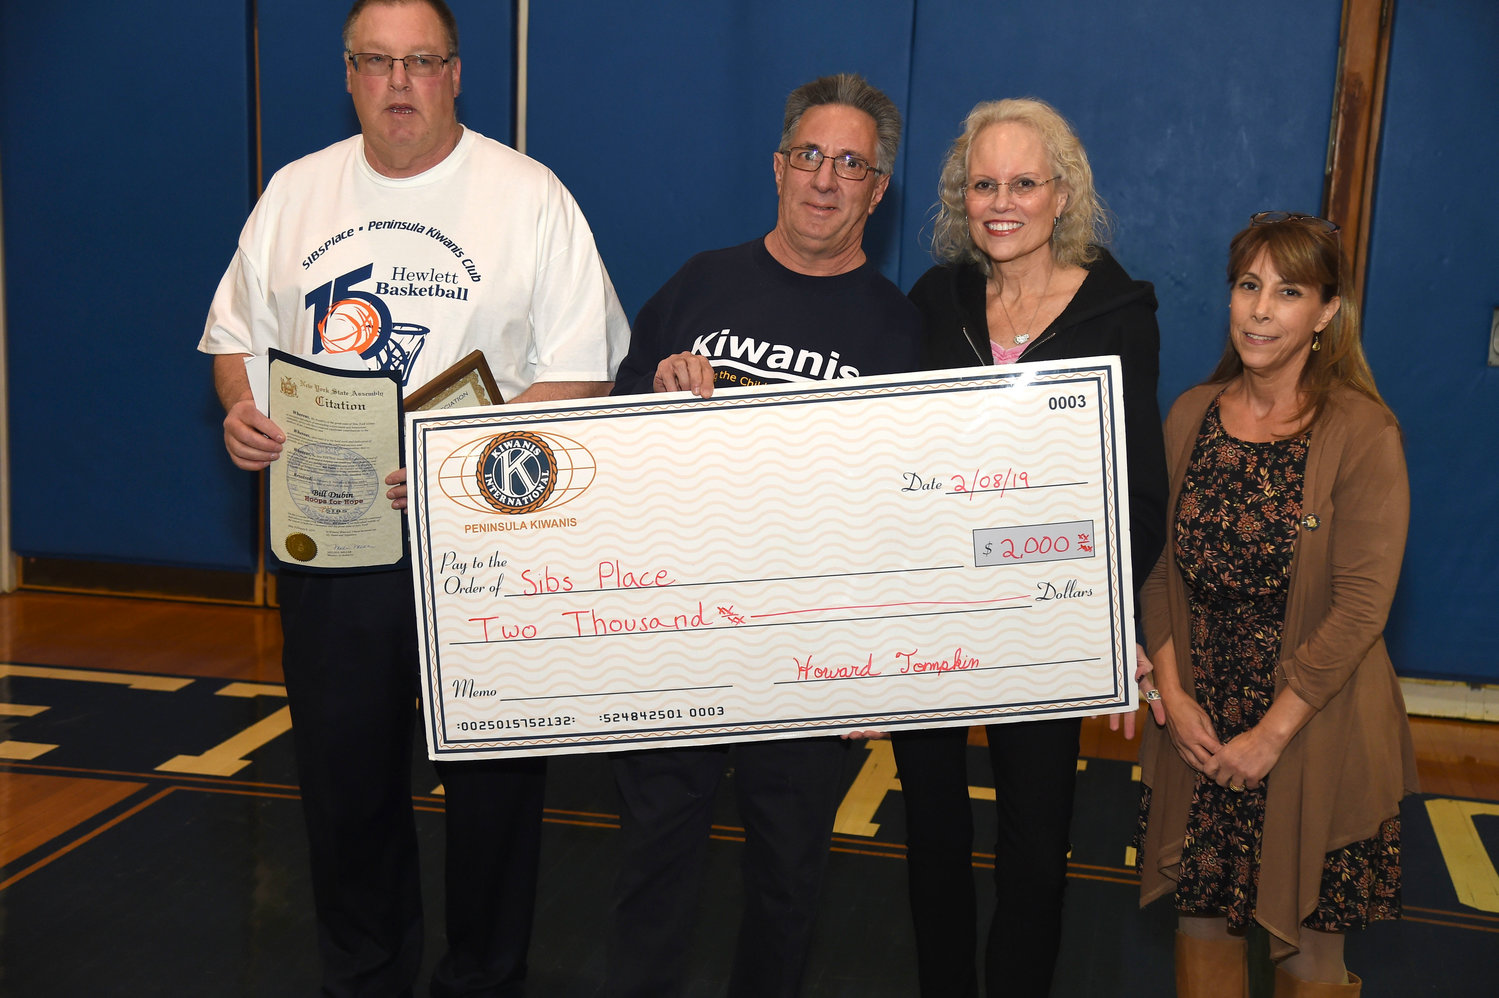 Hopes for Hope has been a winner for Hewlett-based SIBSPlace. From left coach Bill Dubin, Peninsula Kiwanis President Howie Tompkin, SIBSPlace Executive Director Suzanne Kornblatt and State Assemblywoman Melissa Miller.